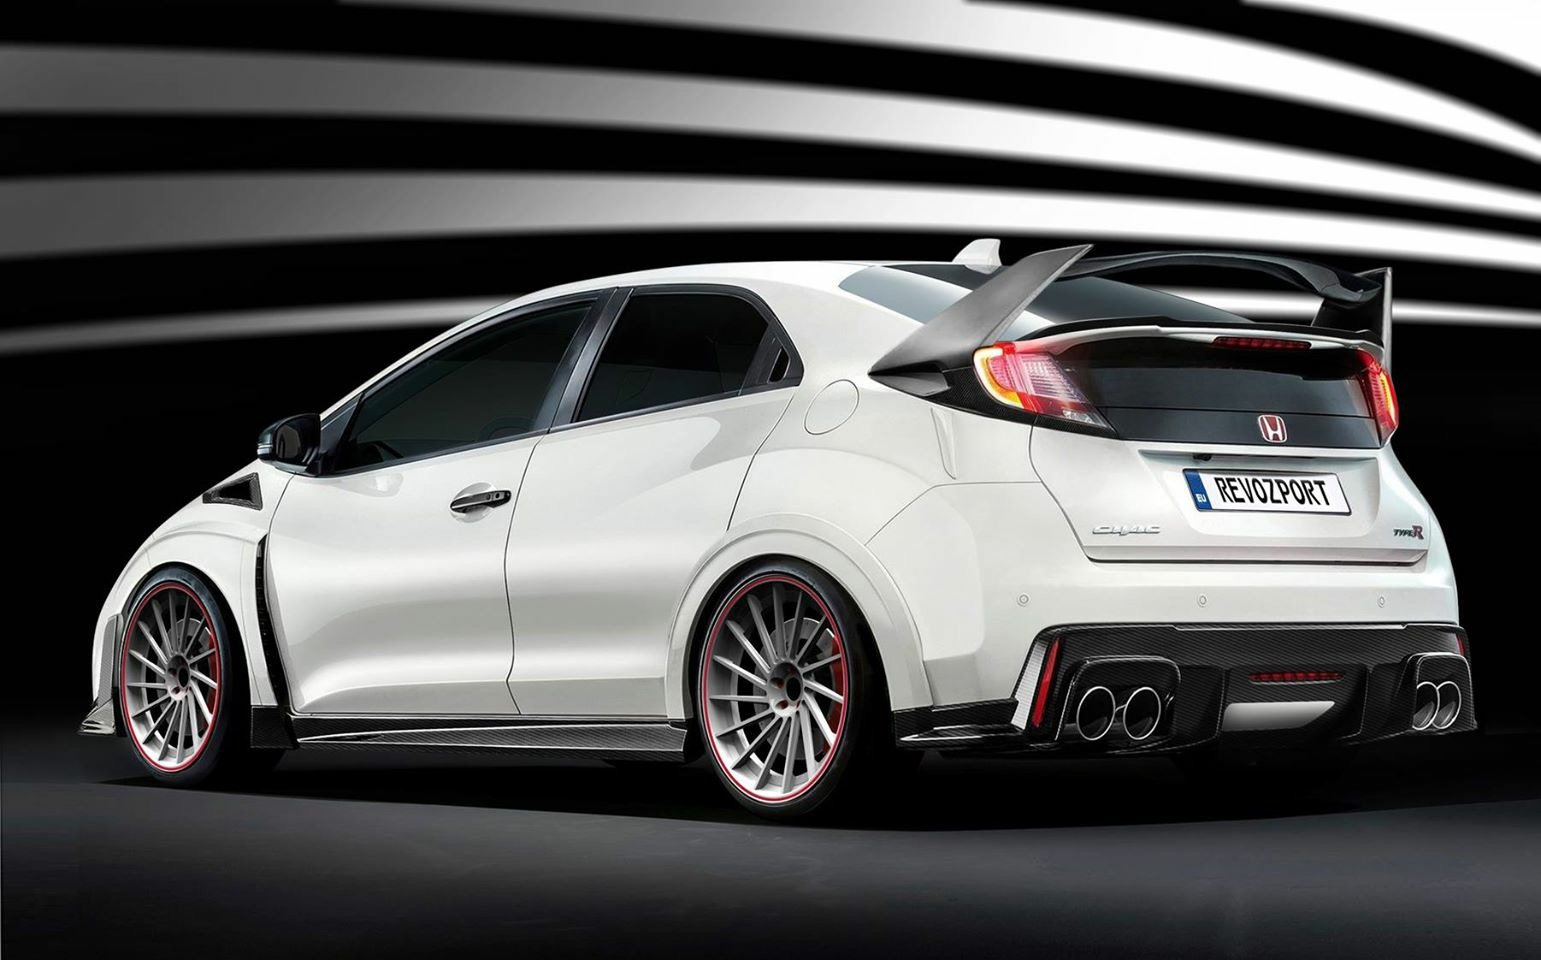 Categories Featured Honda Honda Civic Honda Civic Type-R RevoZport